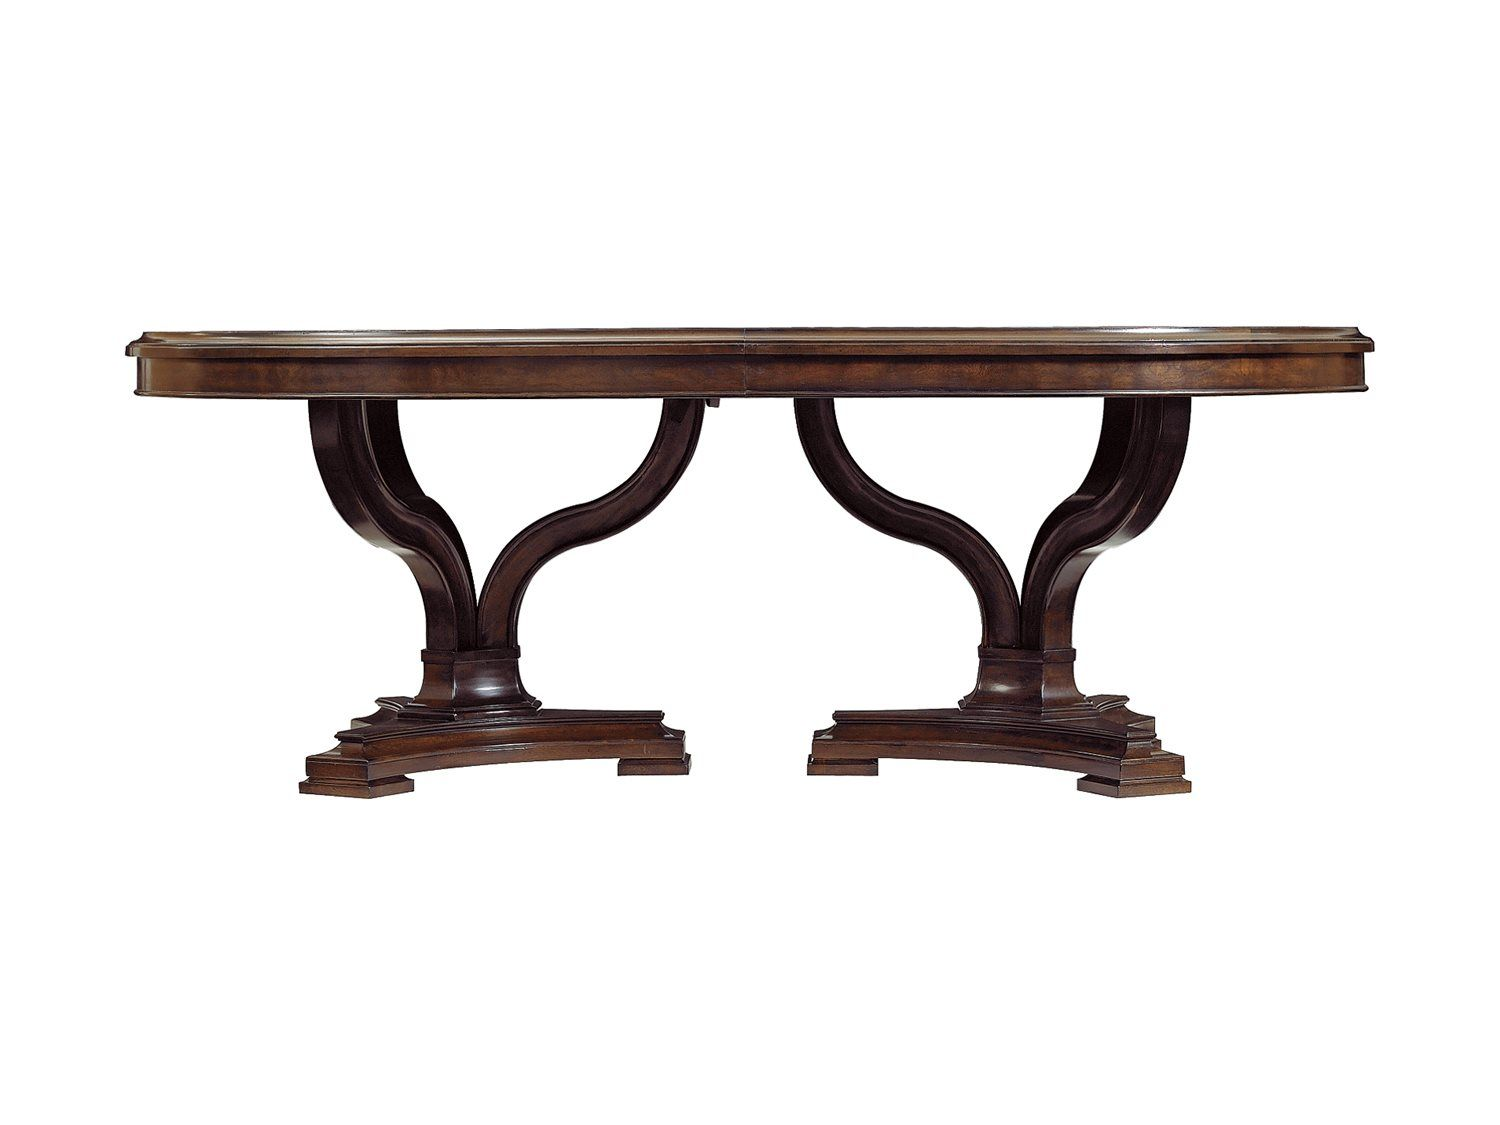 Stanley furniture avalon heights chelsea 84 x 50 oval art epoch pedestal dining table